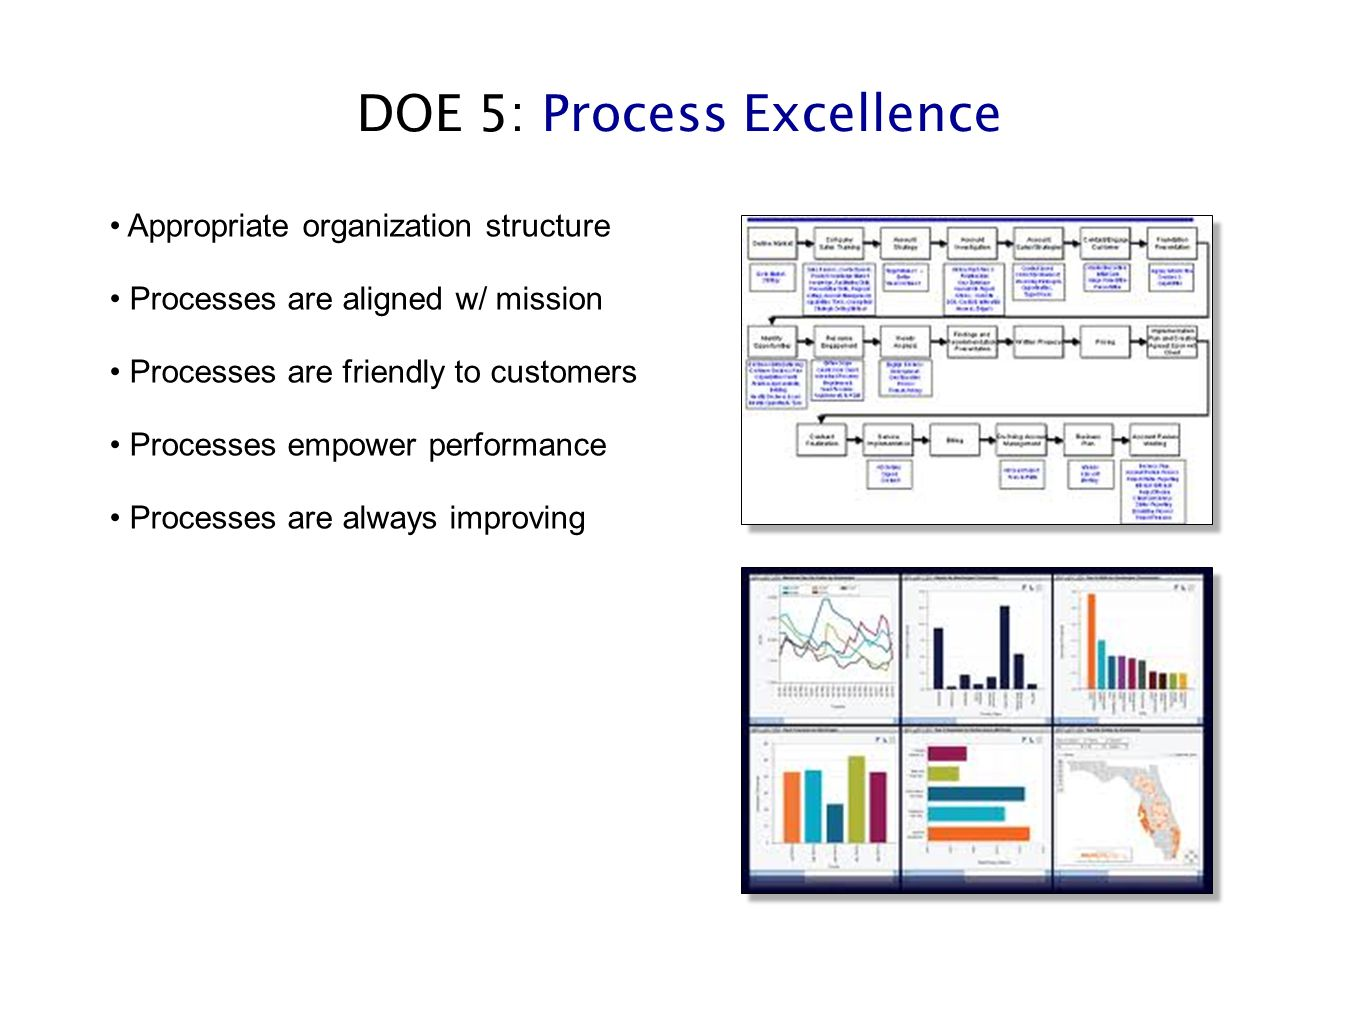 DOE 5: Process Excellence Appropriate organization structure Processes are aligned w/ mission Processes are friendly to customers Processes empower performance Processes are always improving